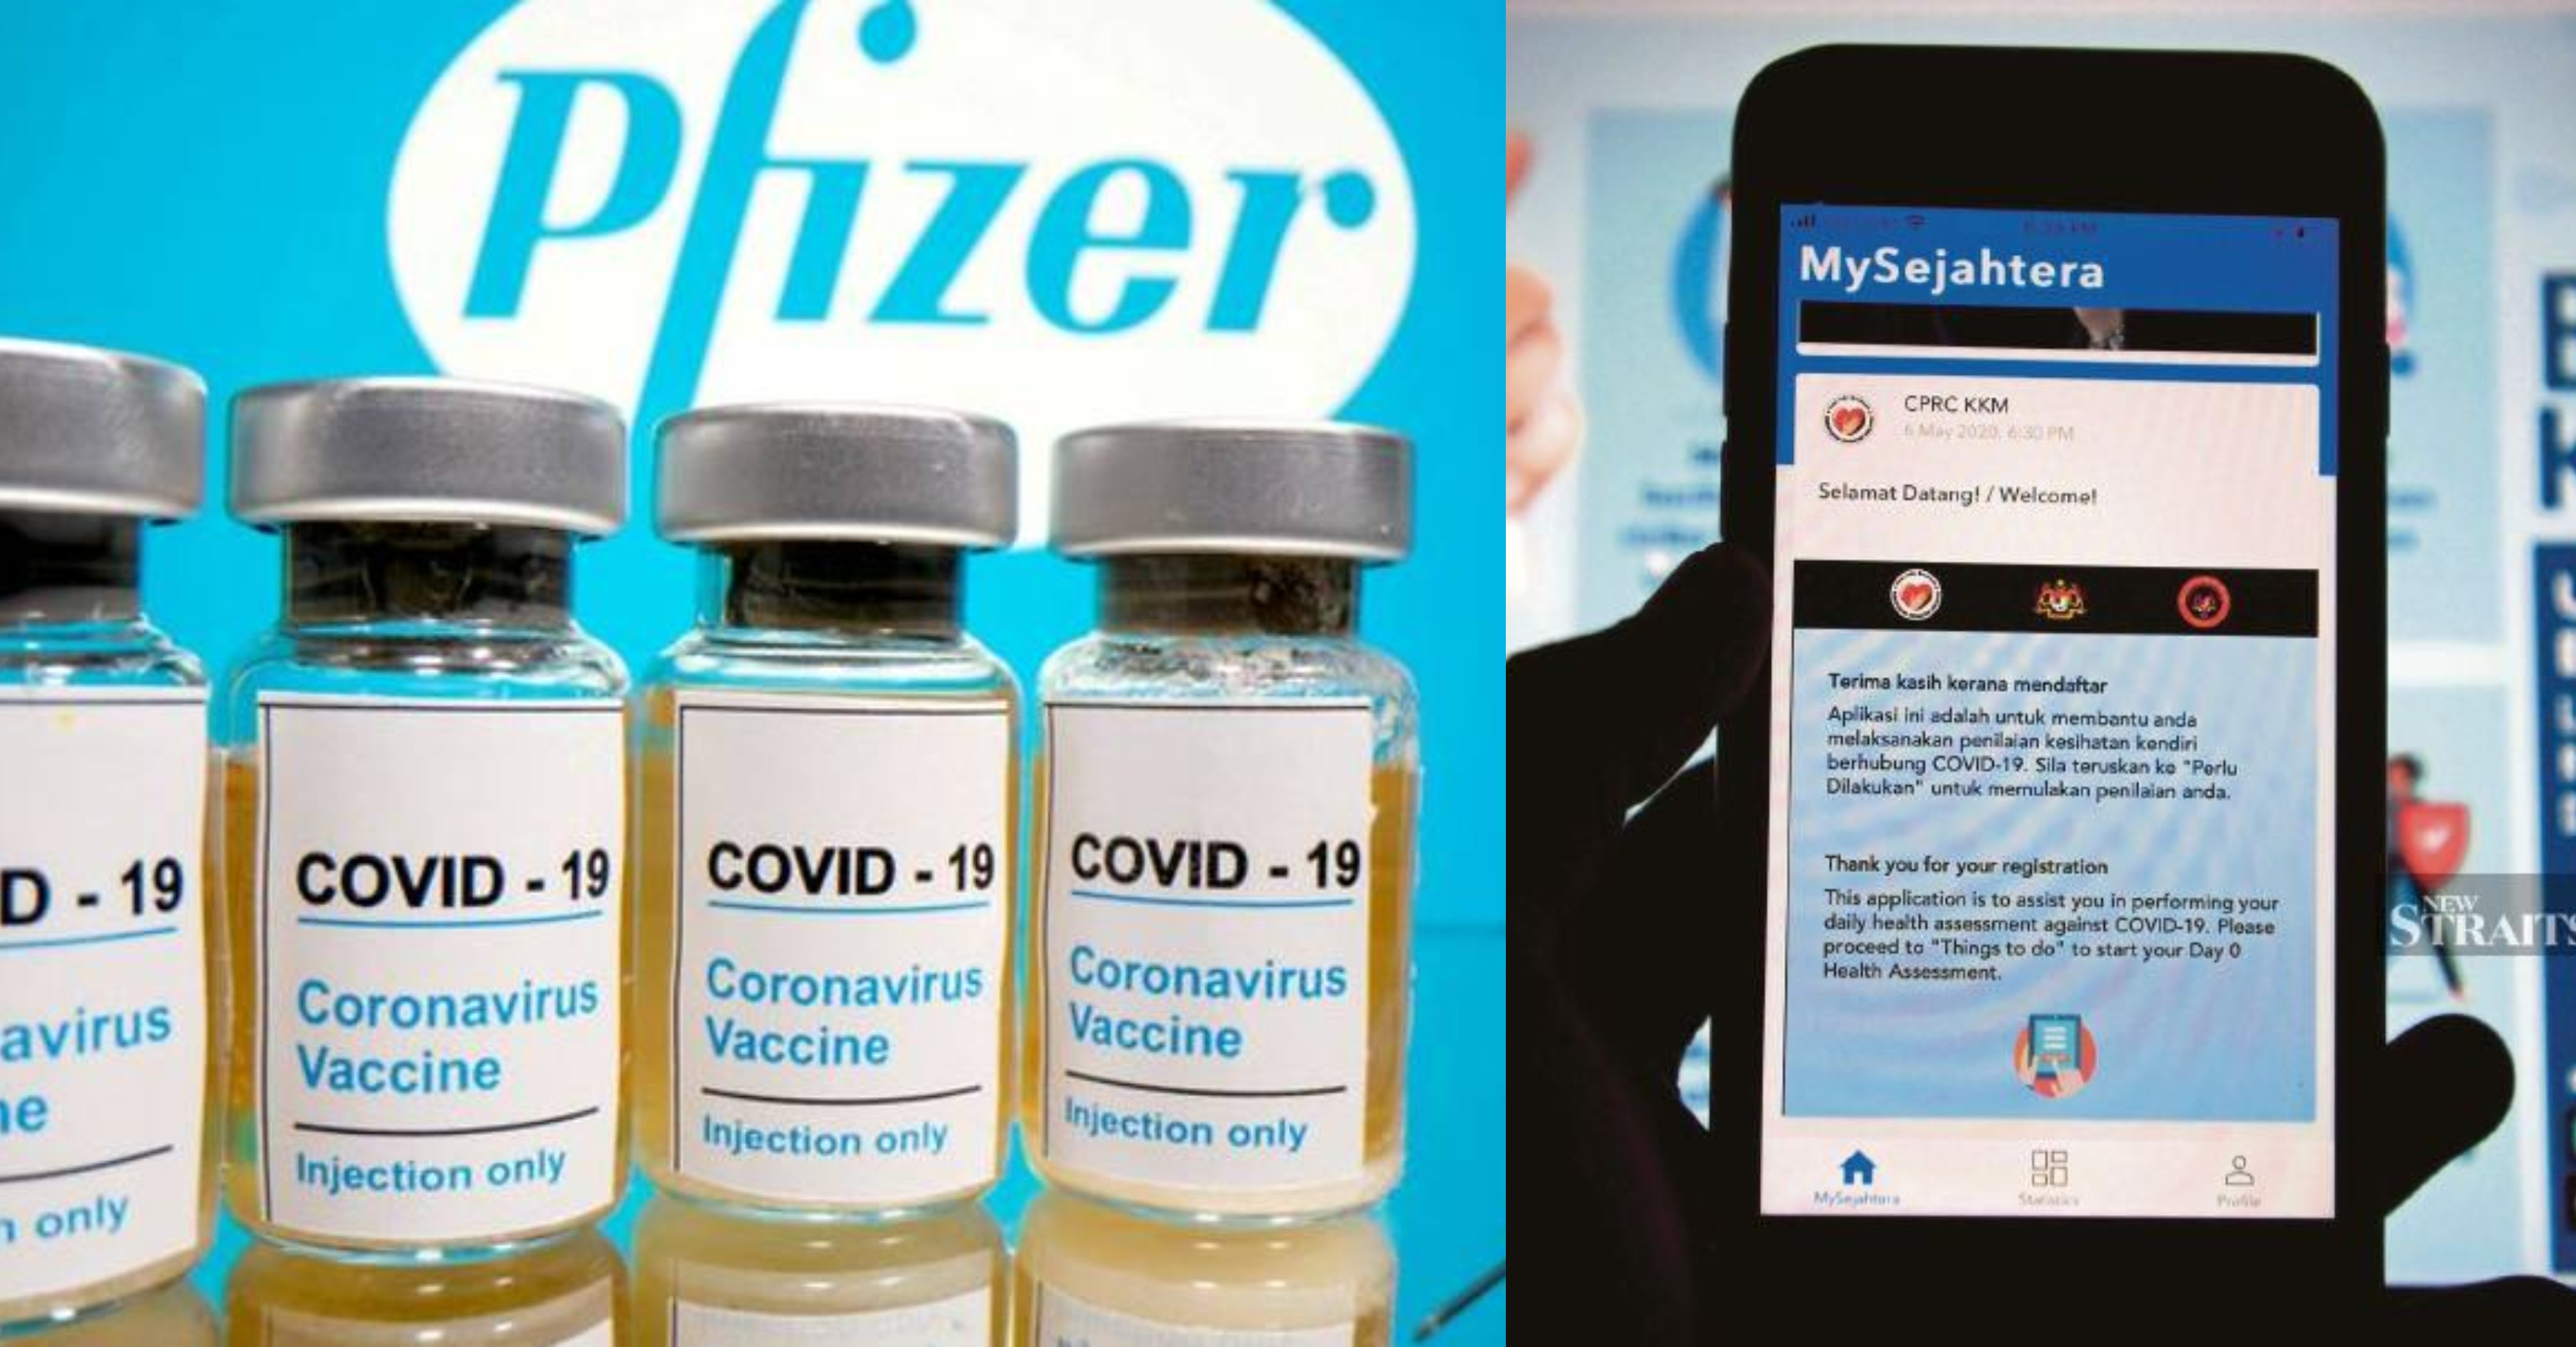 Malaysians Will Soon Be Able To Apply For Covid 19 Vaccination Through Mysejahtera